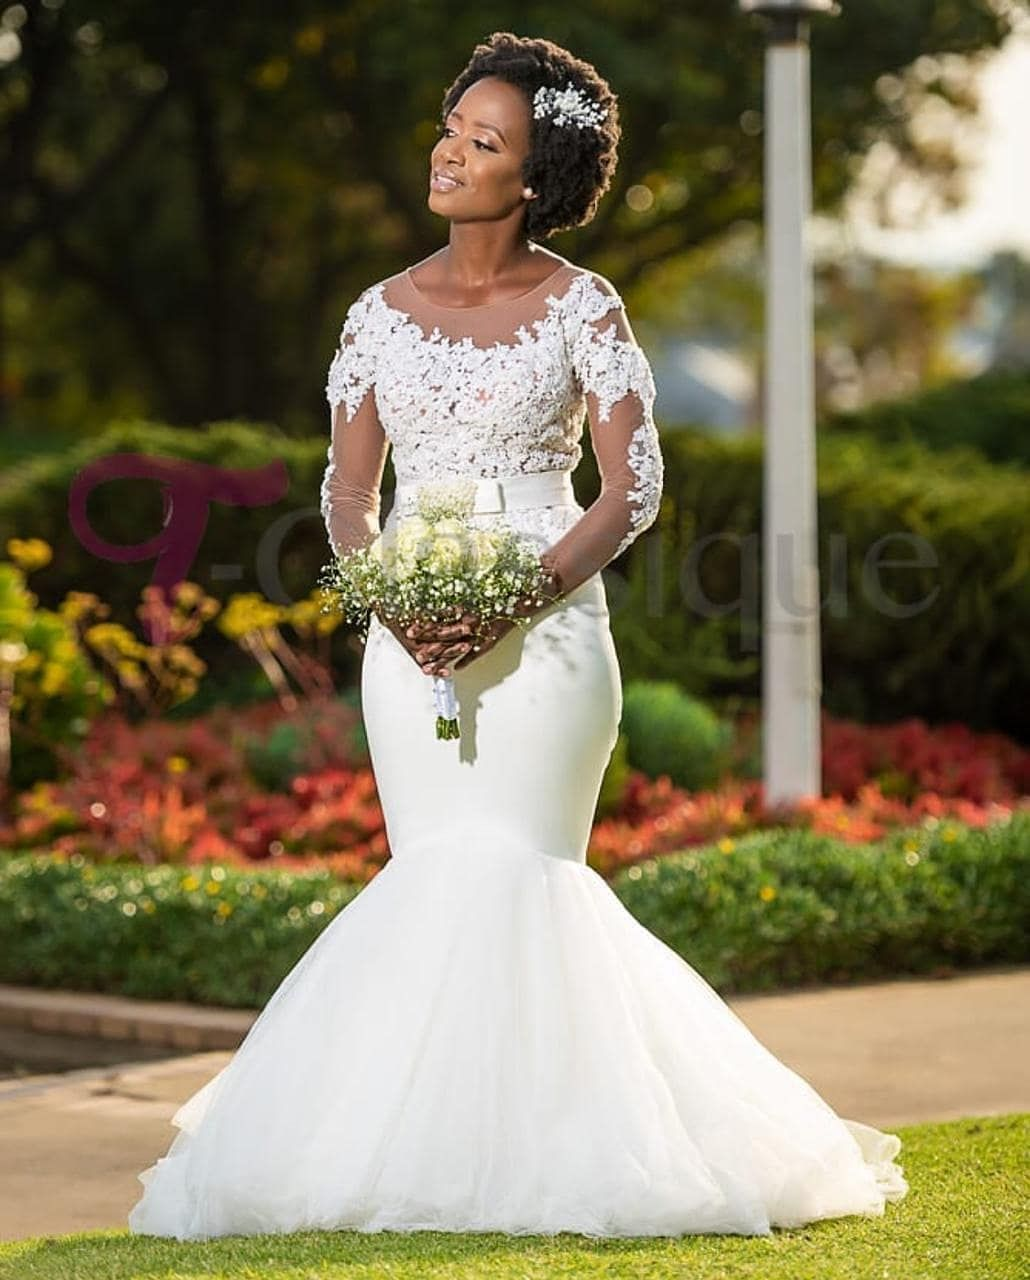 Gorgeous White Wedding Dresses For The African Queen White Wedding Dresses Wedding Dresses Bridal Dresses [ 1280 x 1030 Pixel ]